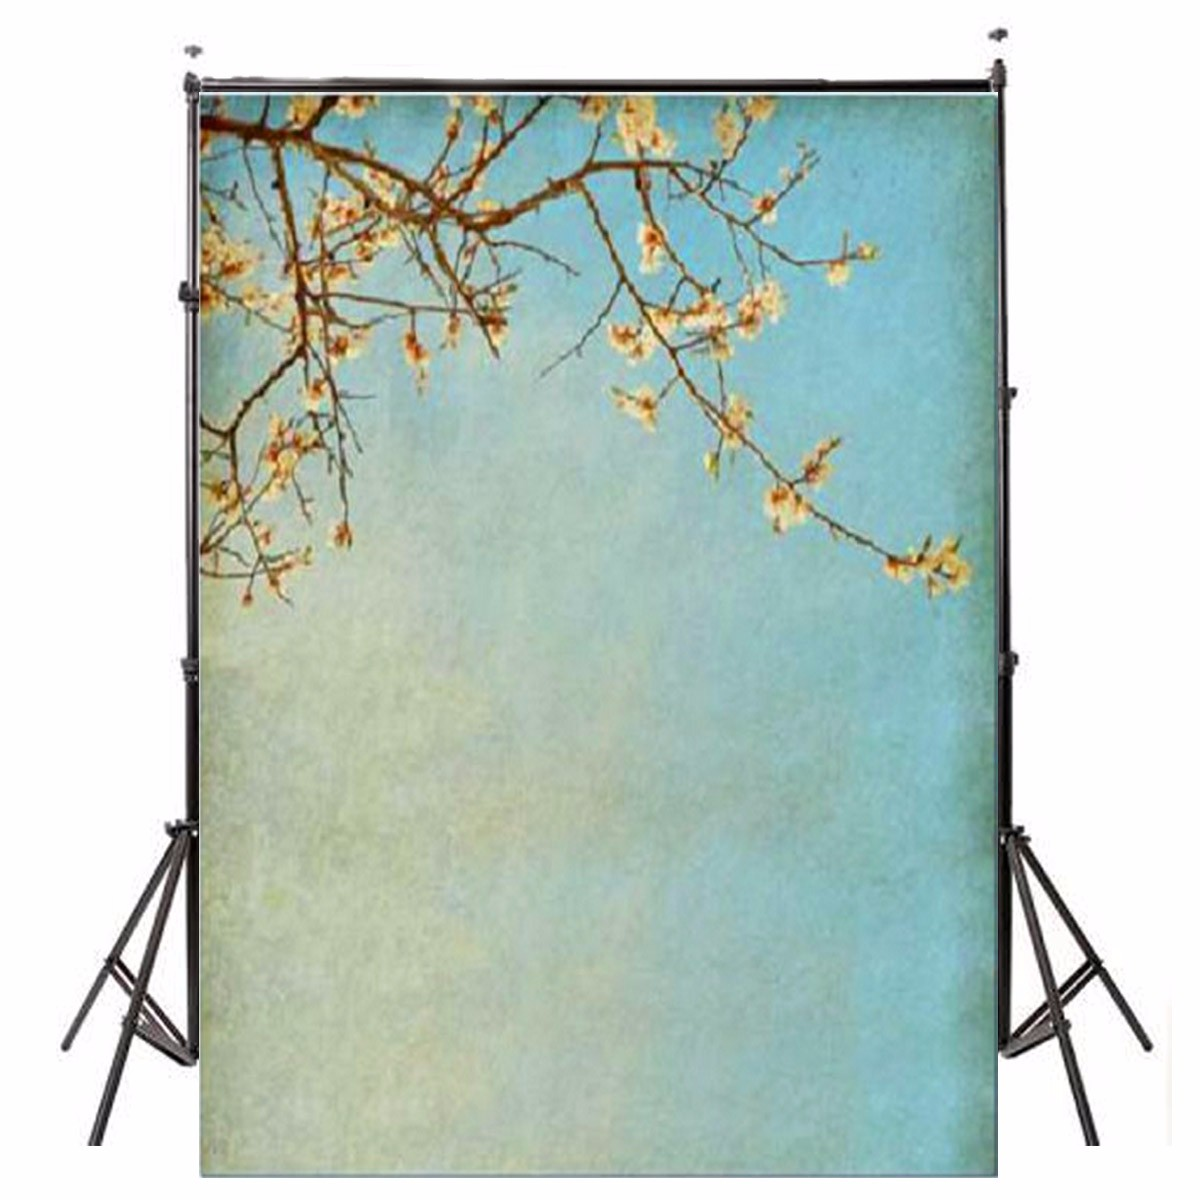 3x5ft Vinyl Photography Backdrops Newborn Tree Branch Scenery Background Studio Prop